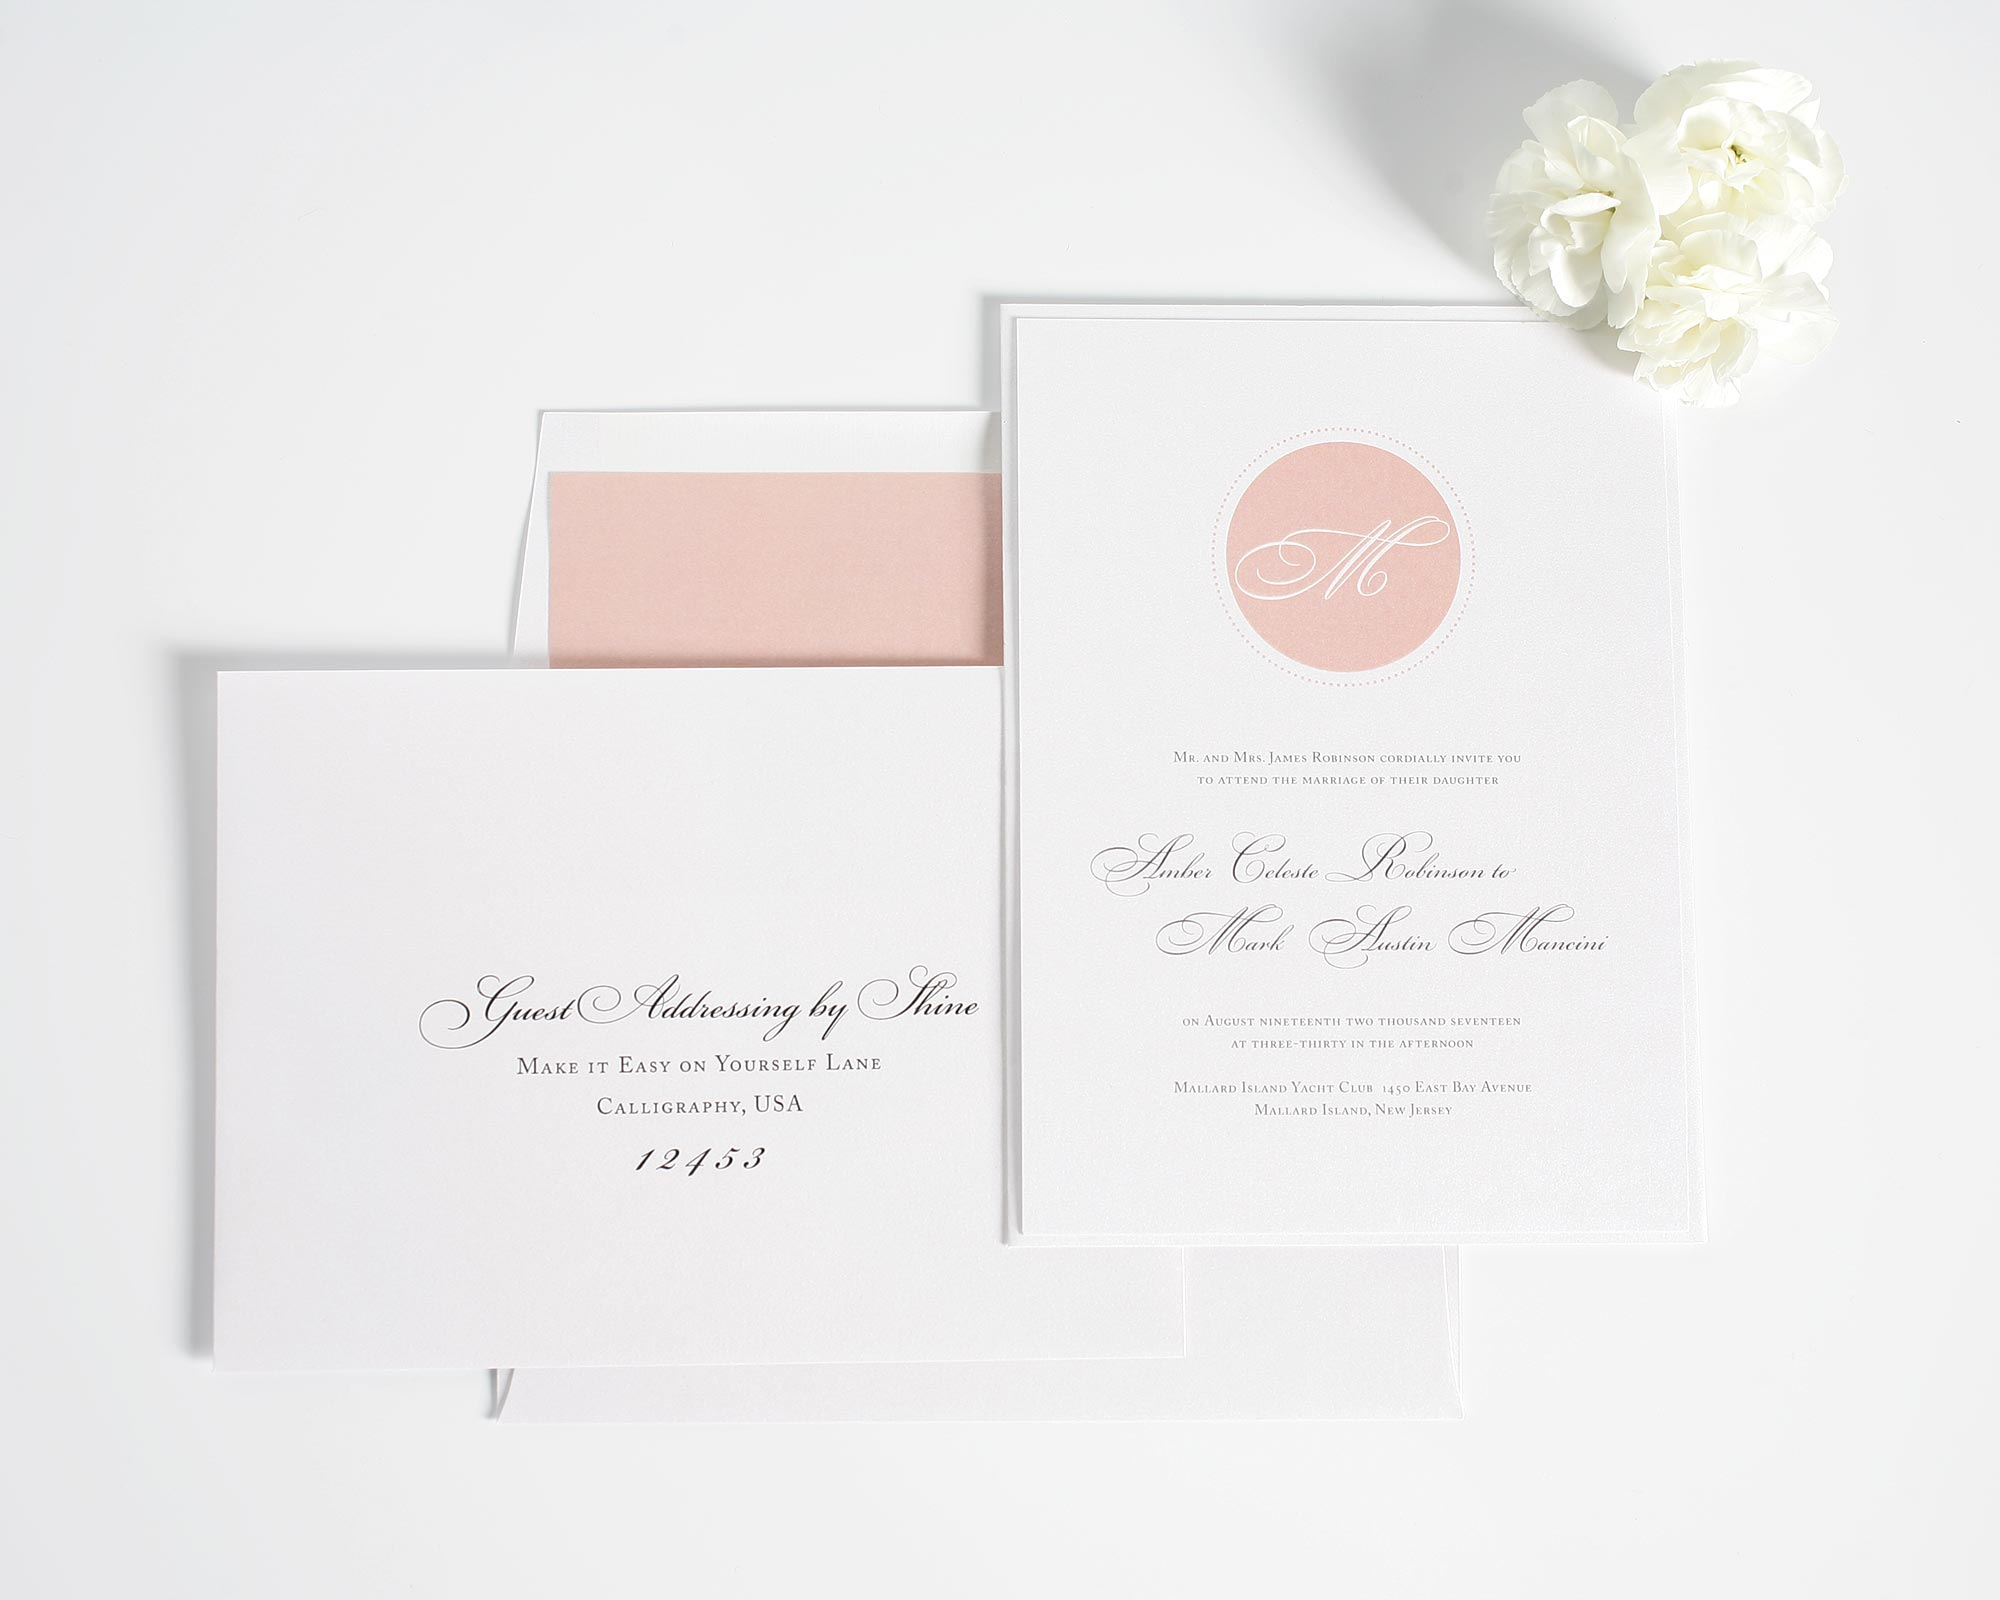 Blush wedding invitations with circle monogram